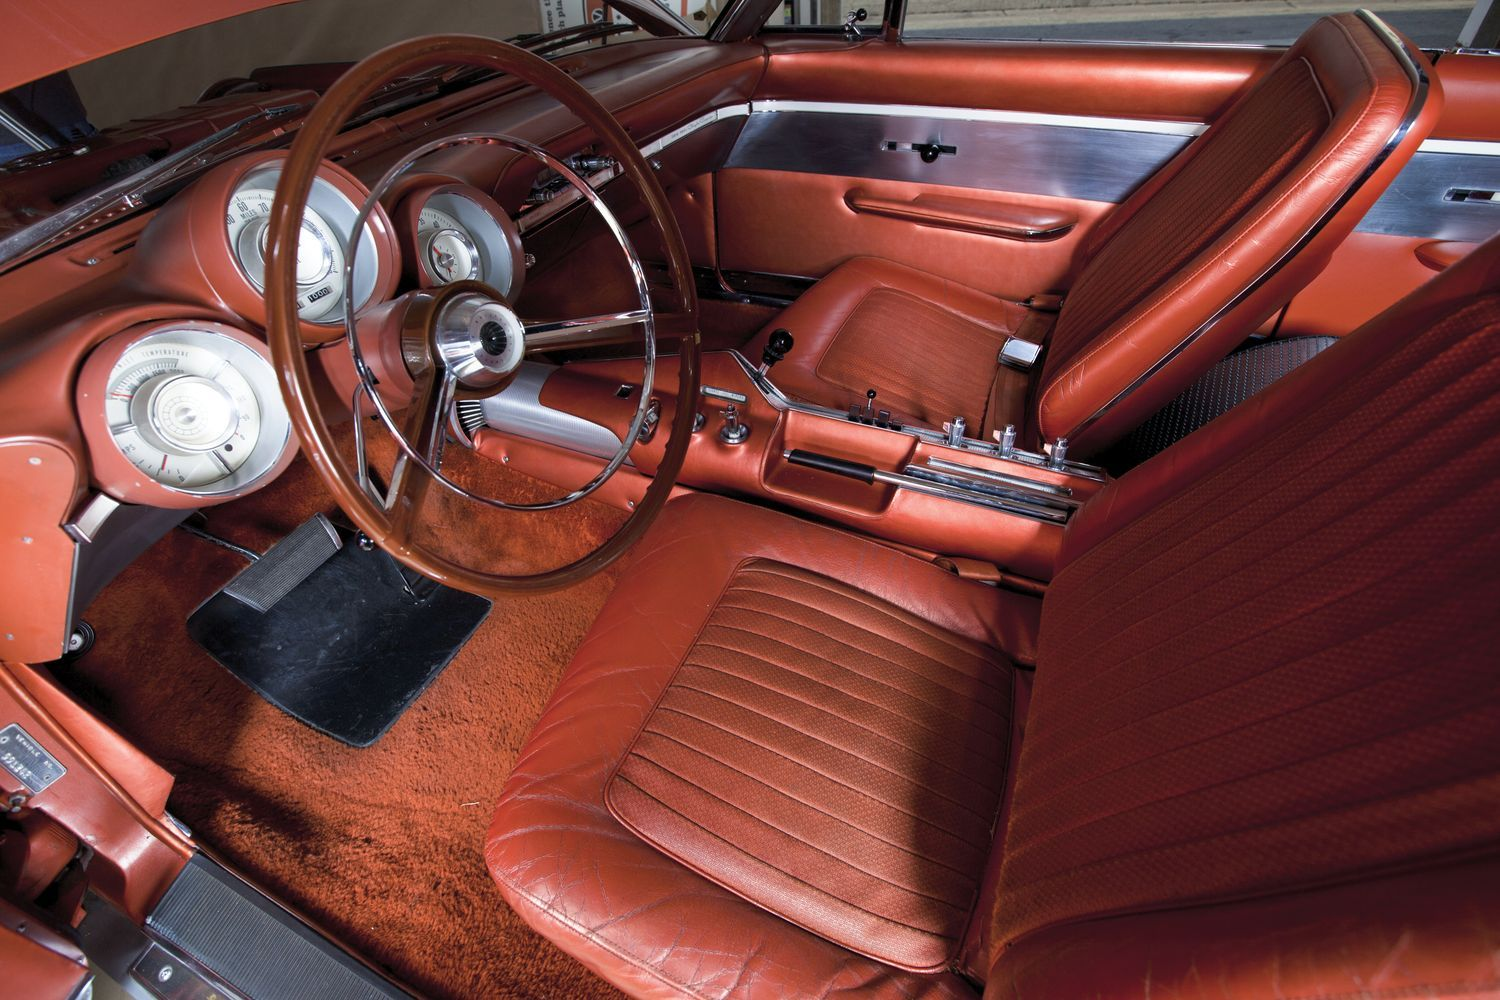 Find this pin and more on 1963 chrysler turbine car